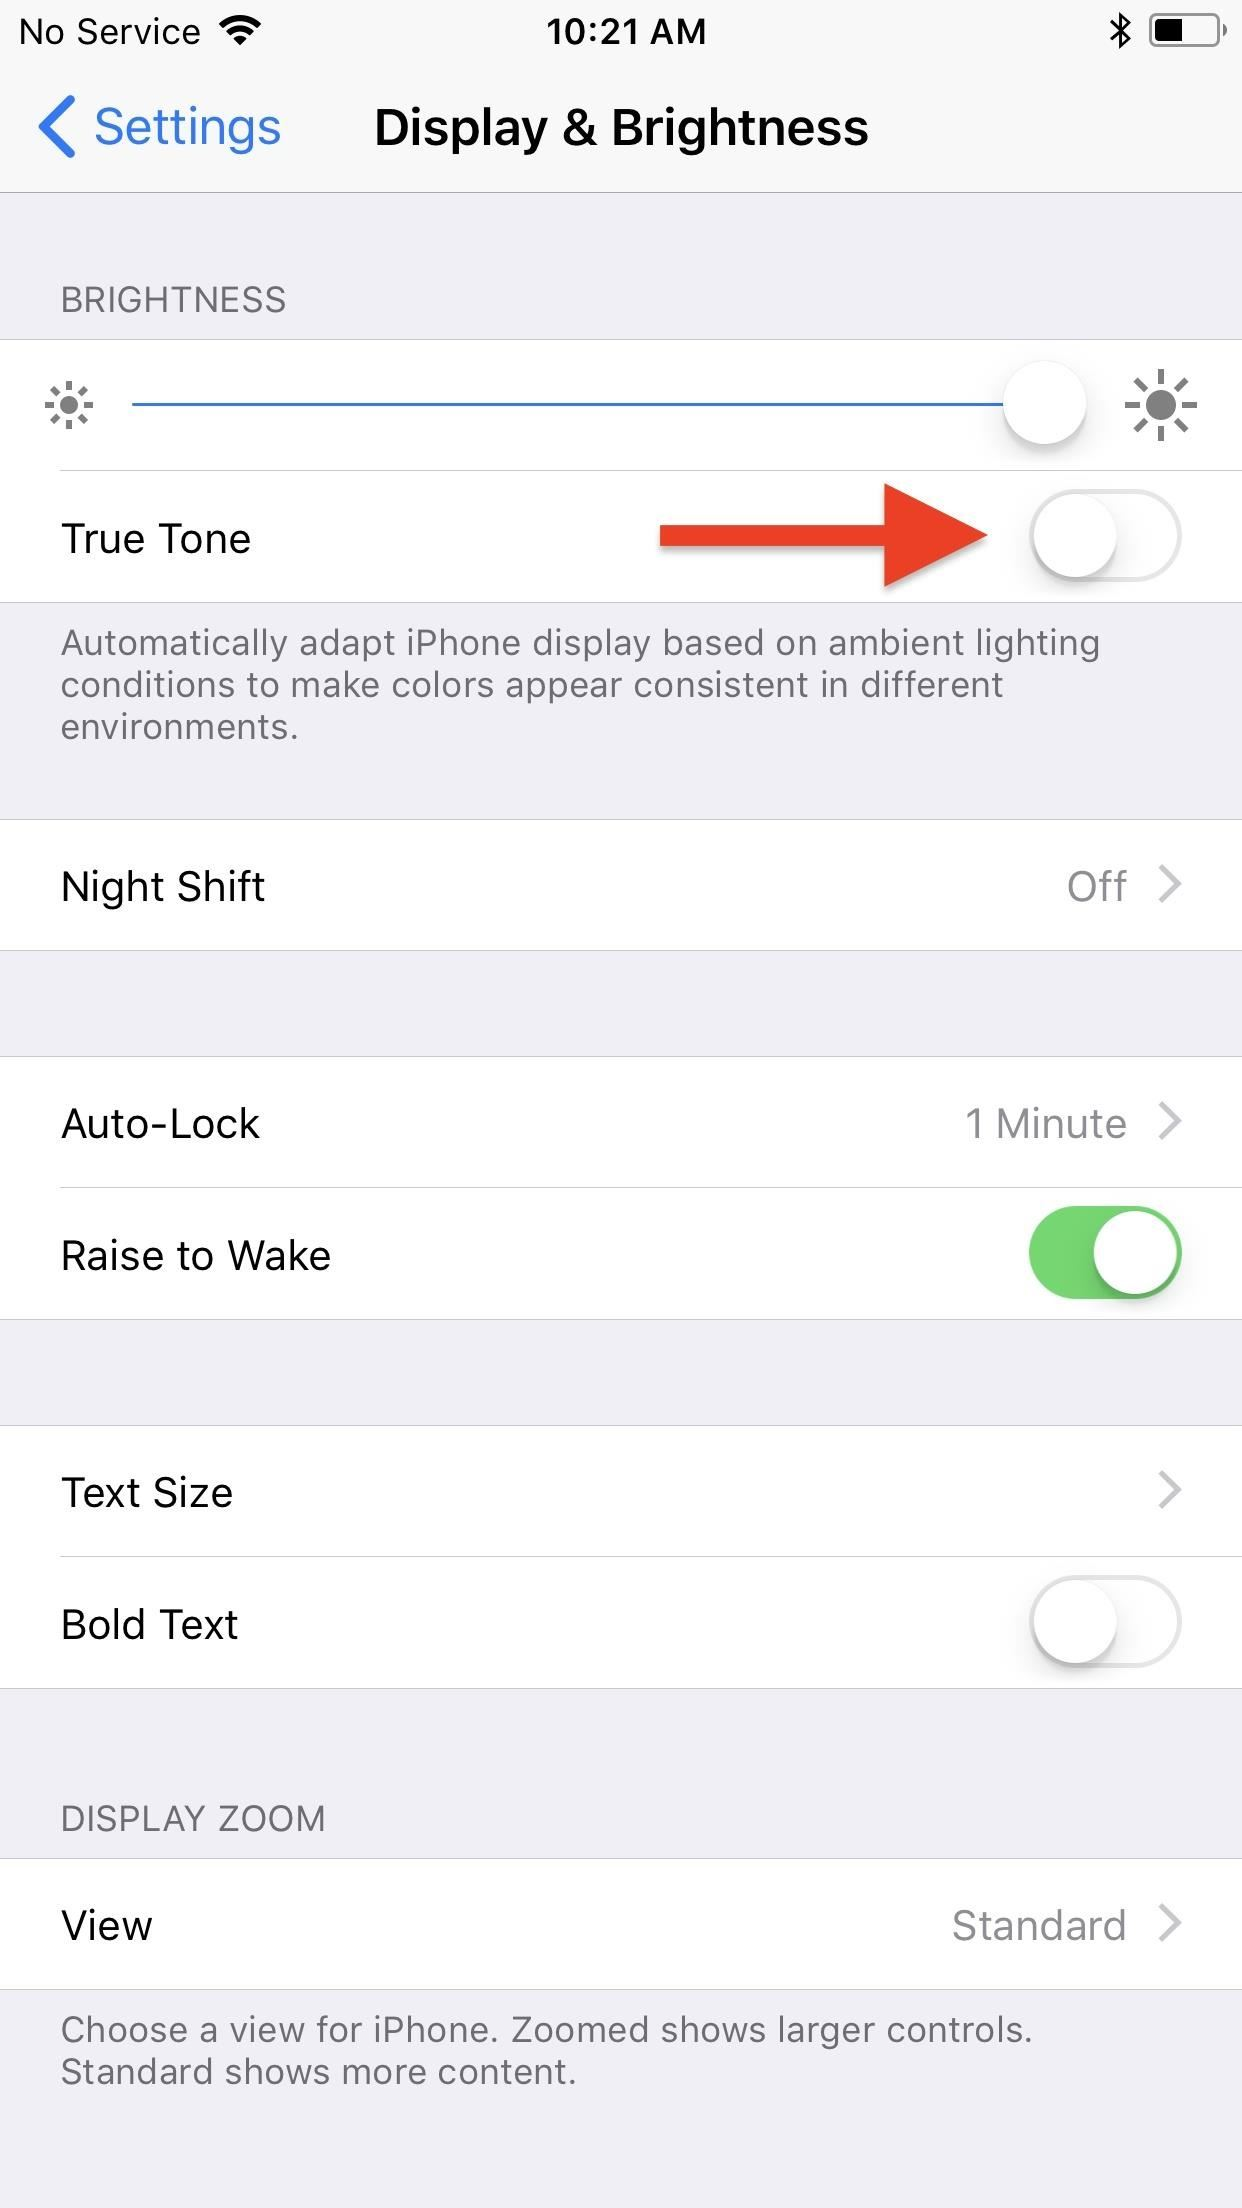 How to Disable the True Tone Display on Your iPhone 8, iPhone 8 Plus, or iPhone X